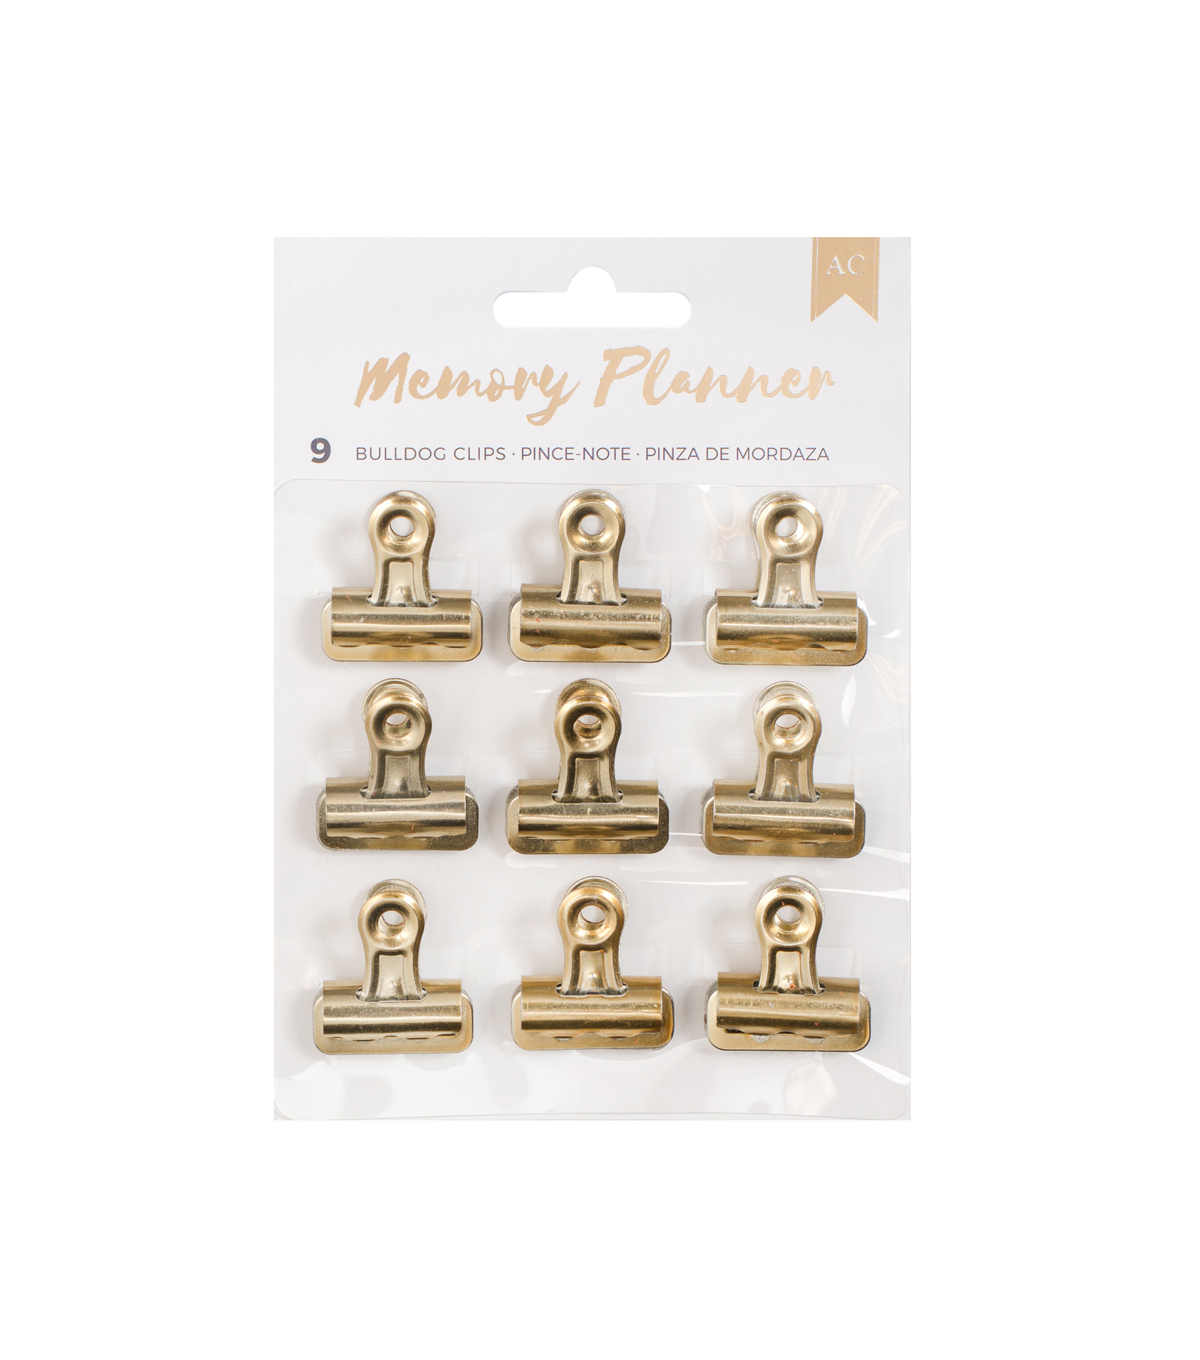 American Crafts™ 9 Pack Memory Planner Binder Clips